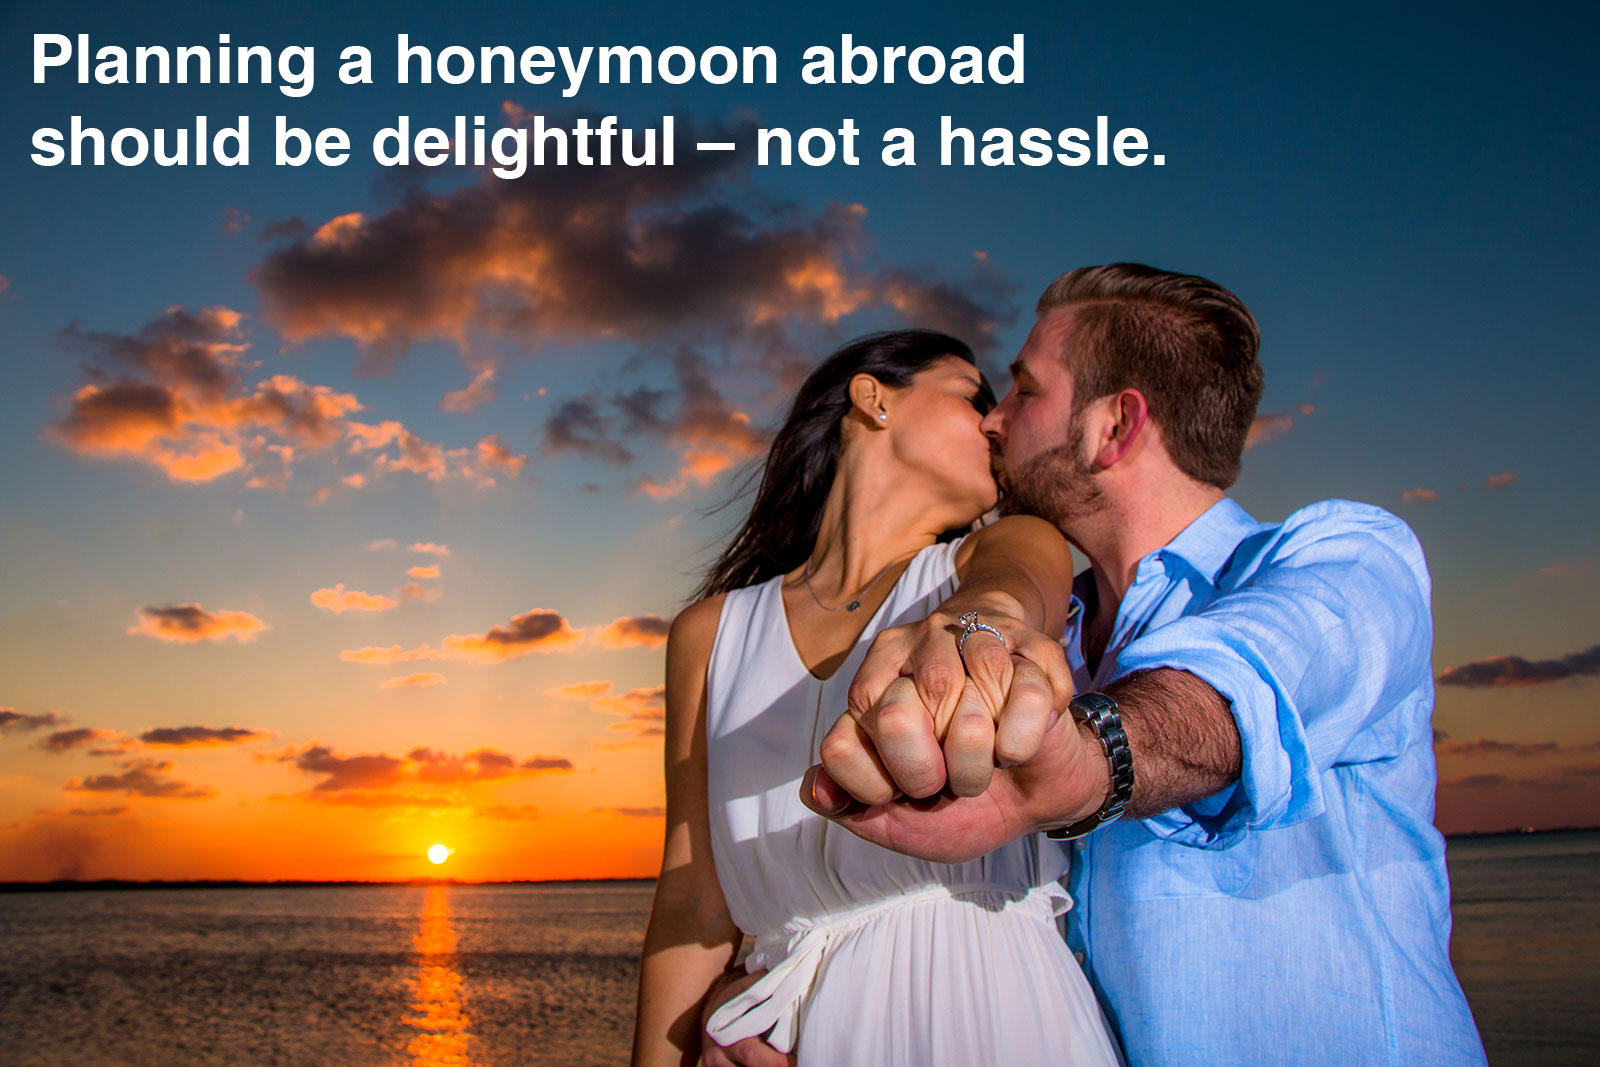 Honeymoon2015-Traveler-Arturo-Barrera_web2